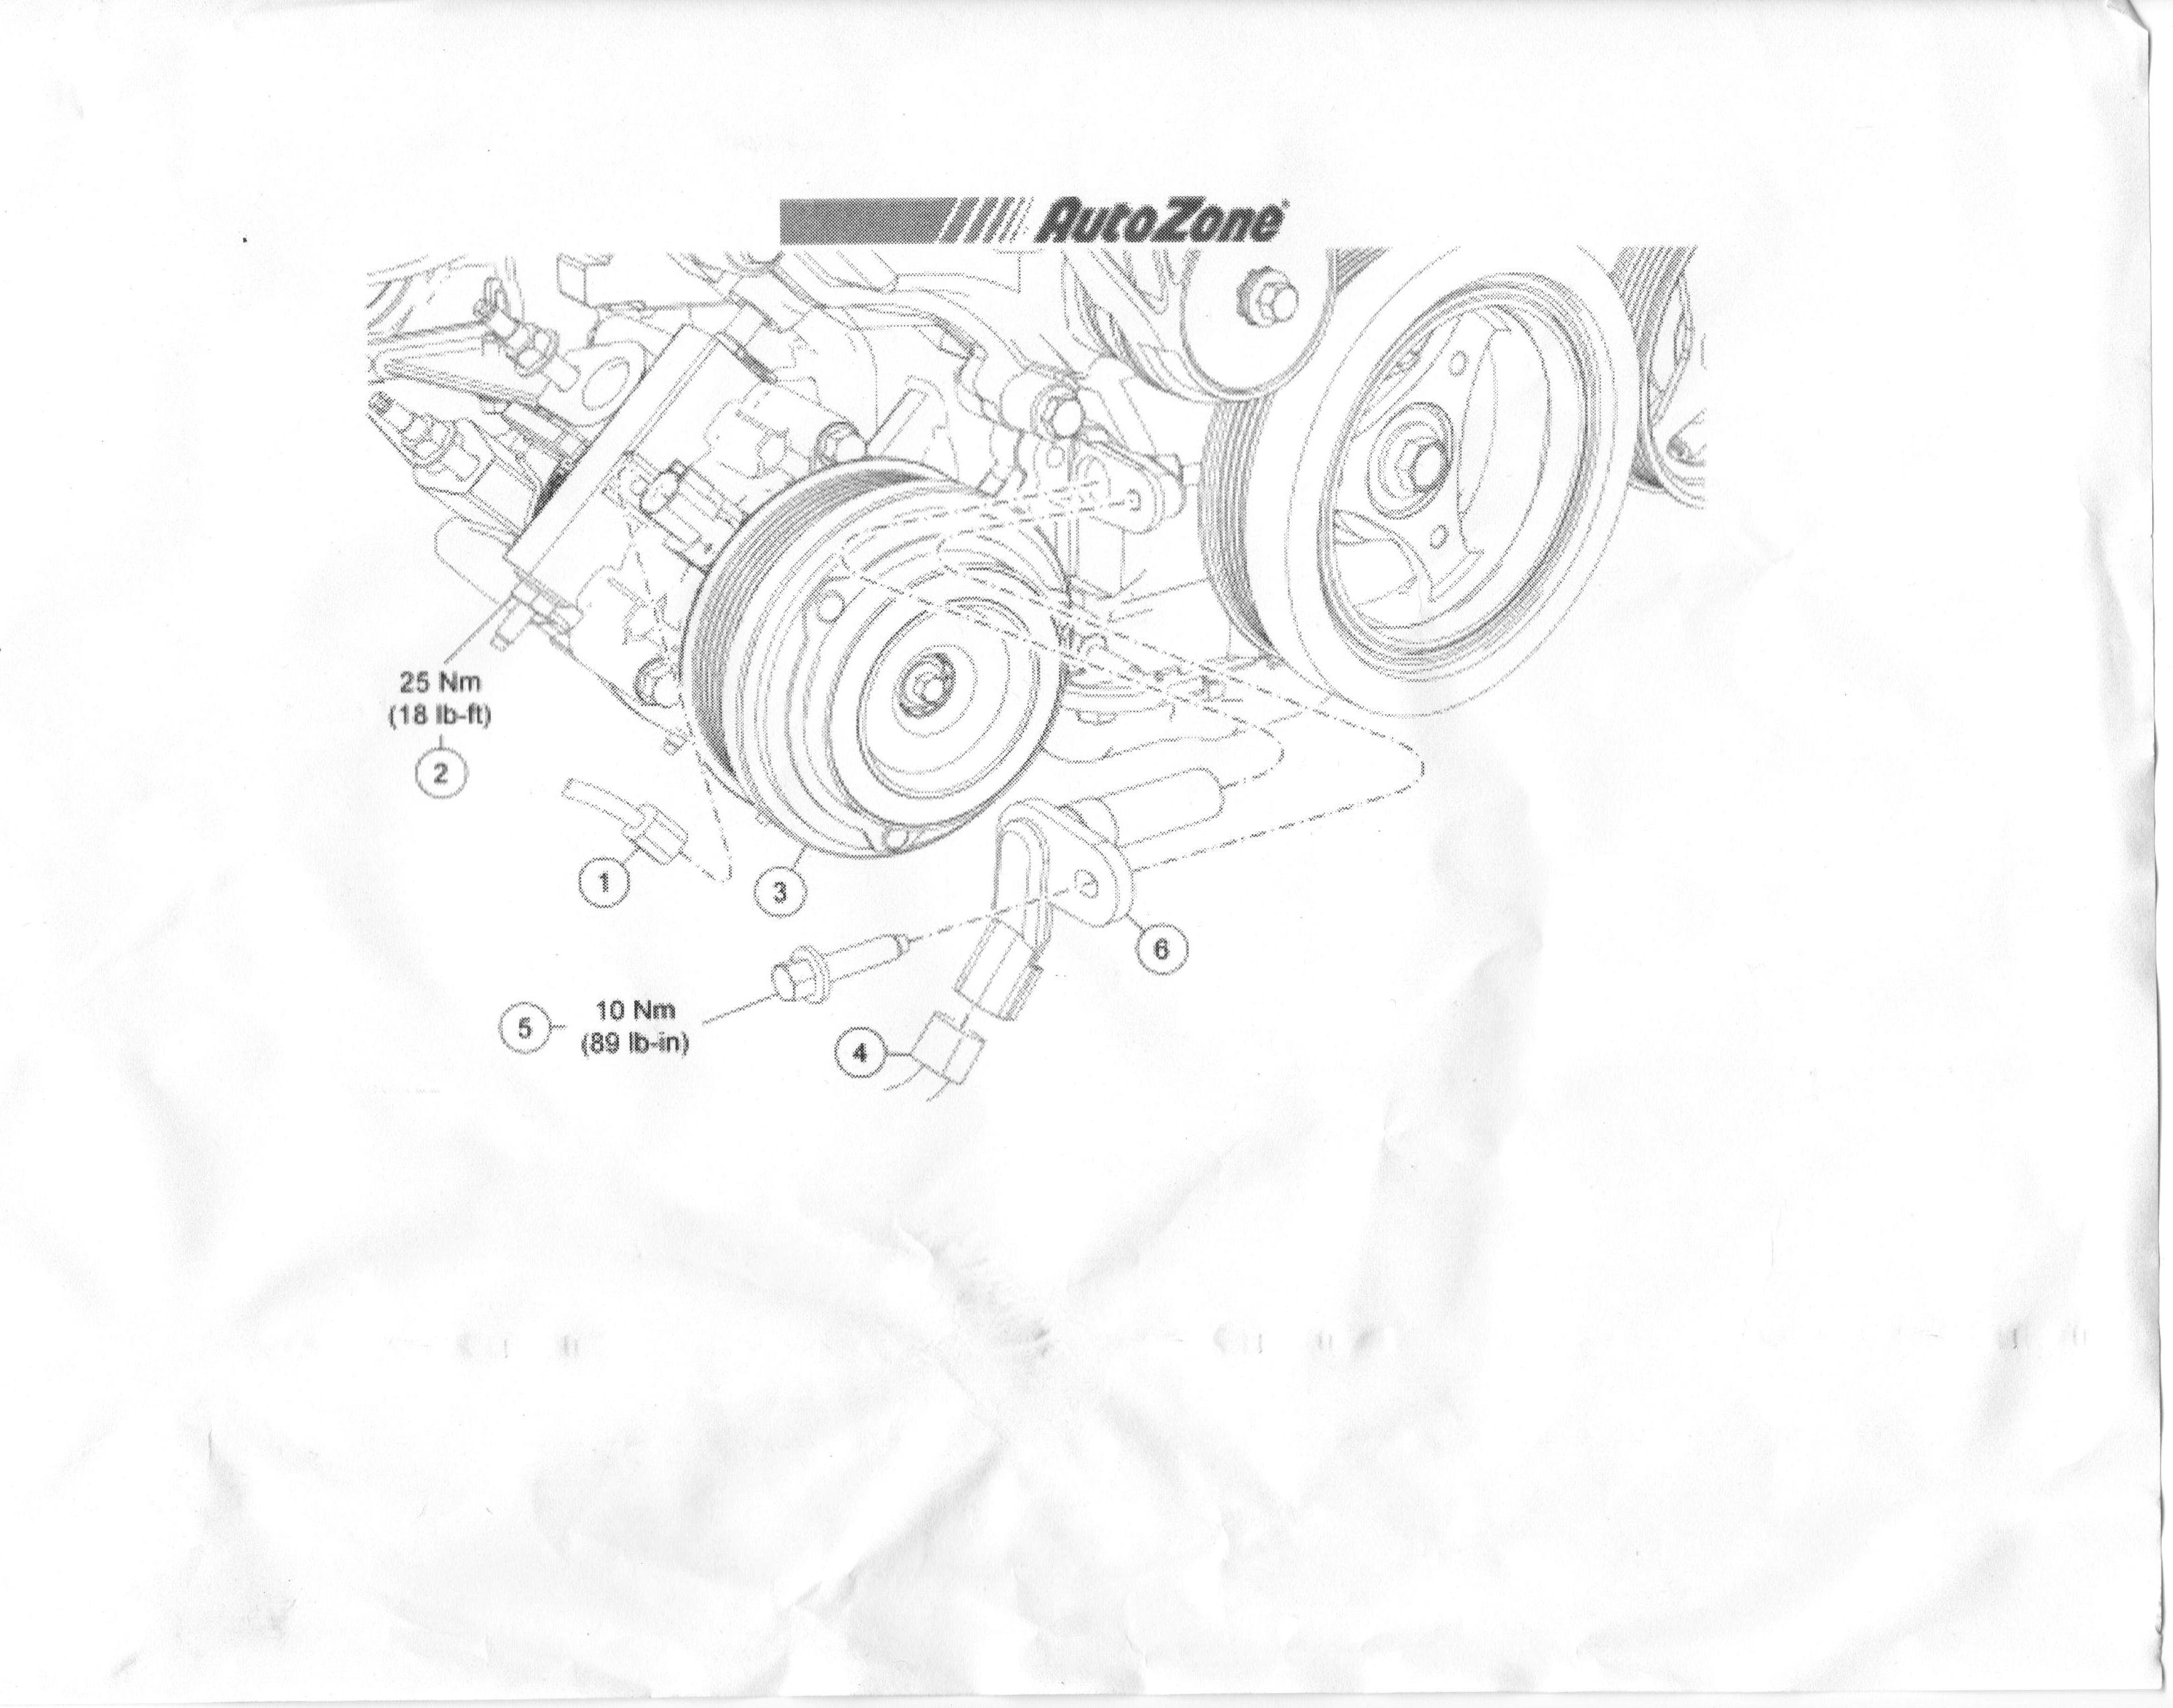 136484d1312676651 crankshaft position sensor problem cpk 001 crankshaft position sensor problem page 2 ford mustang forum  at cos-gaming.co